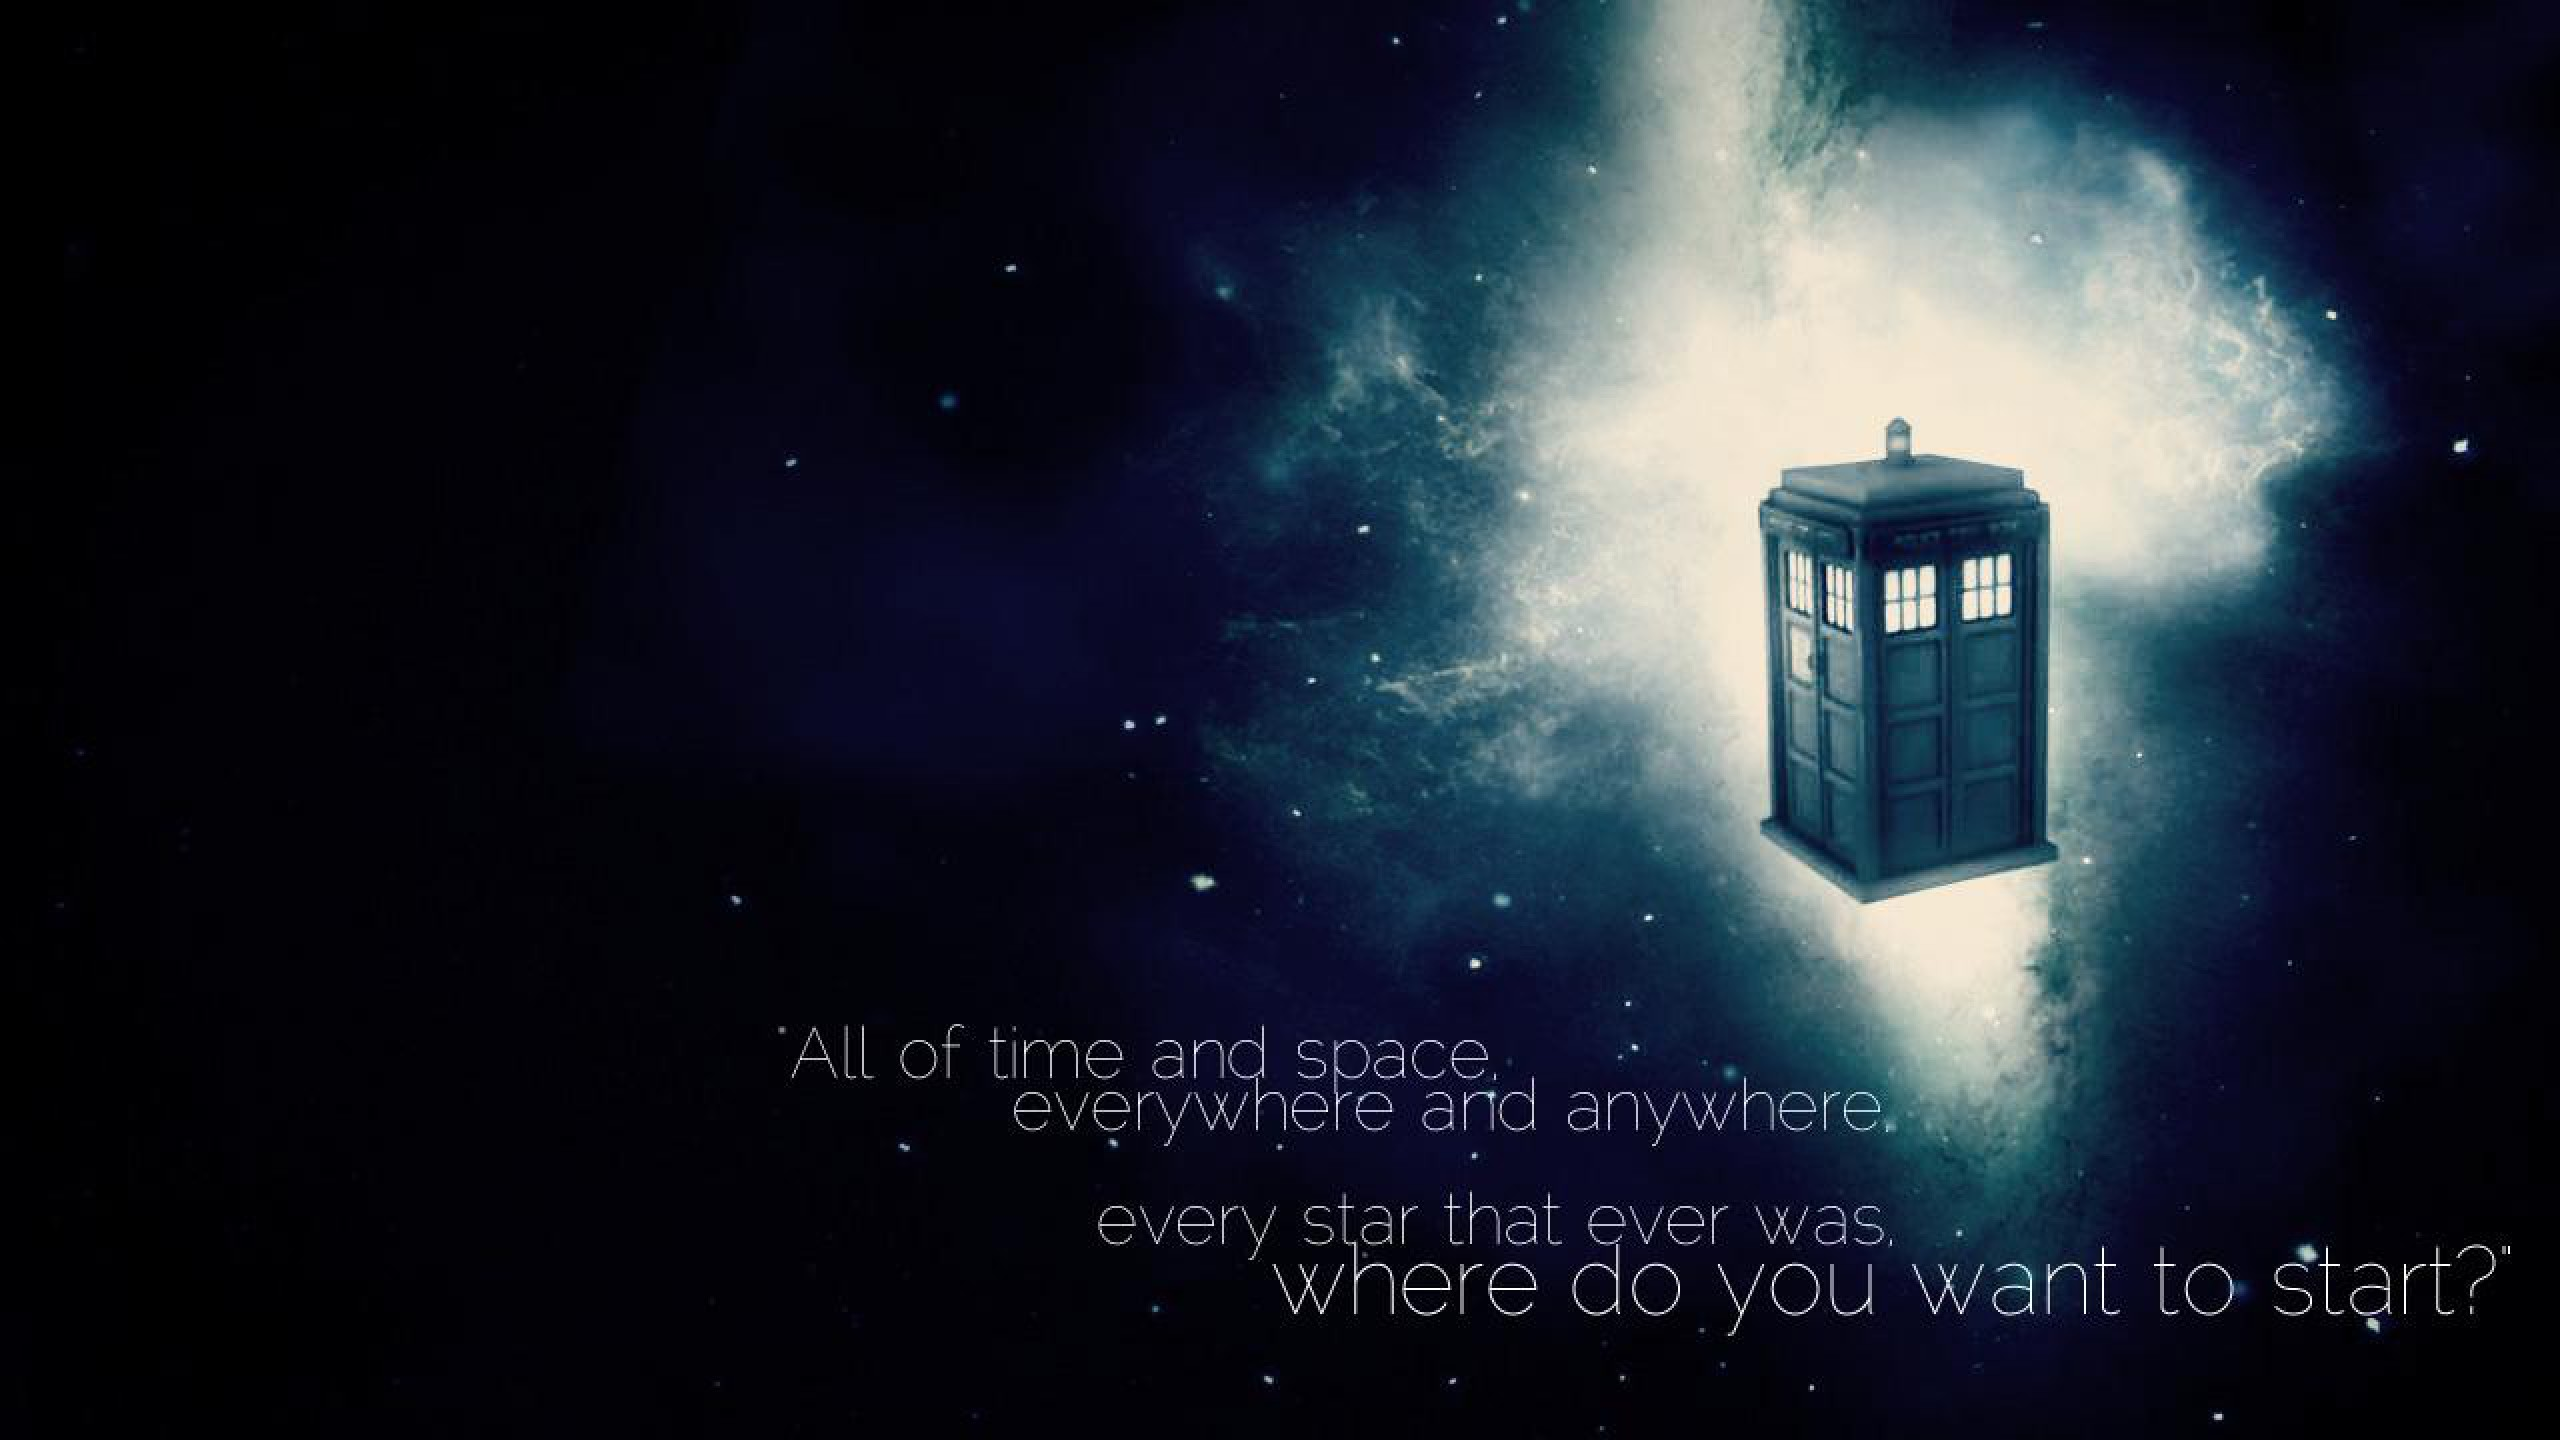 Wallpapers for Gt Doctor Who Wallpaper Angels Xpx Hd